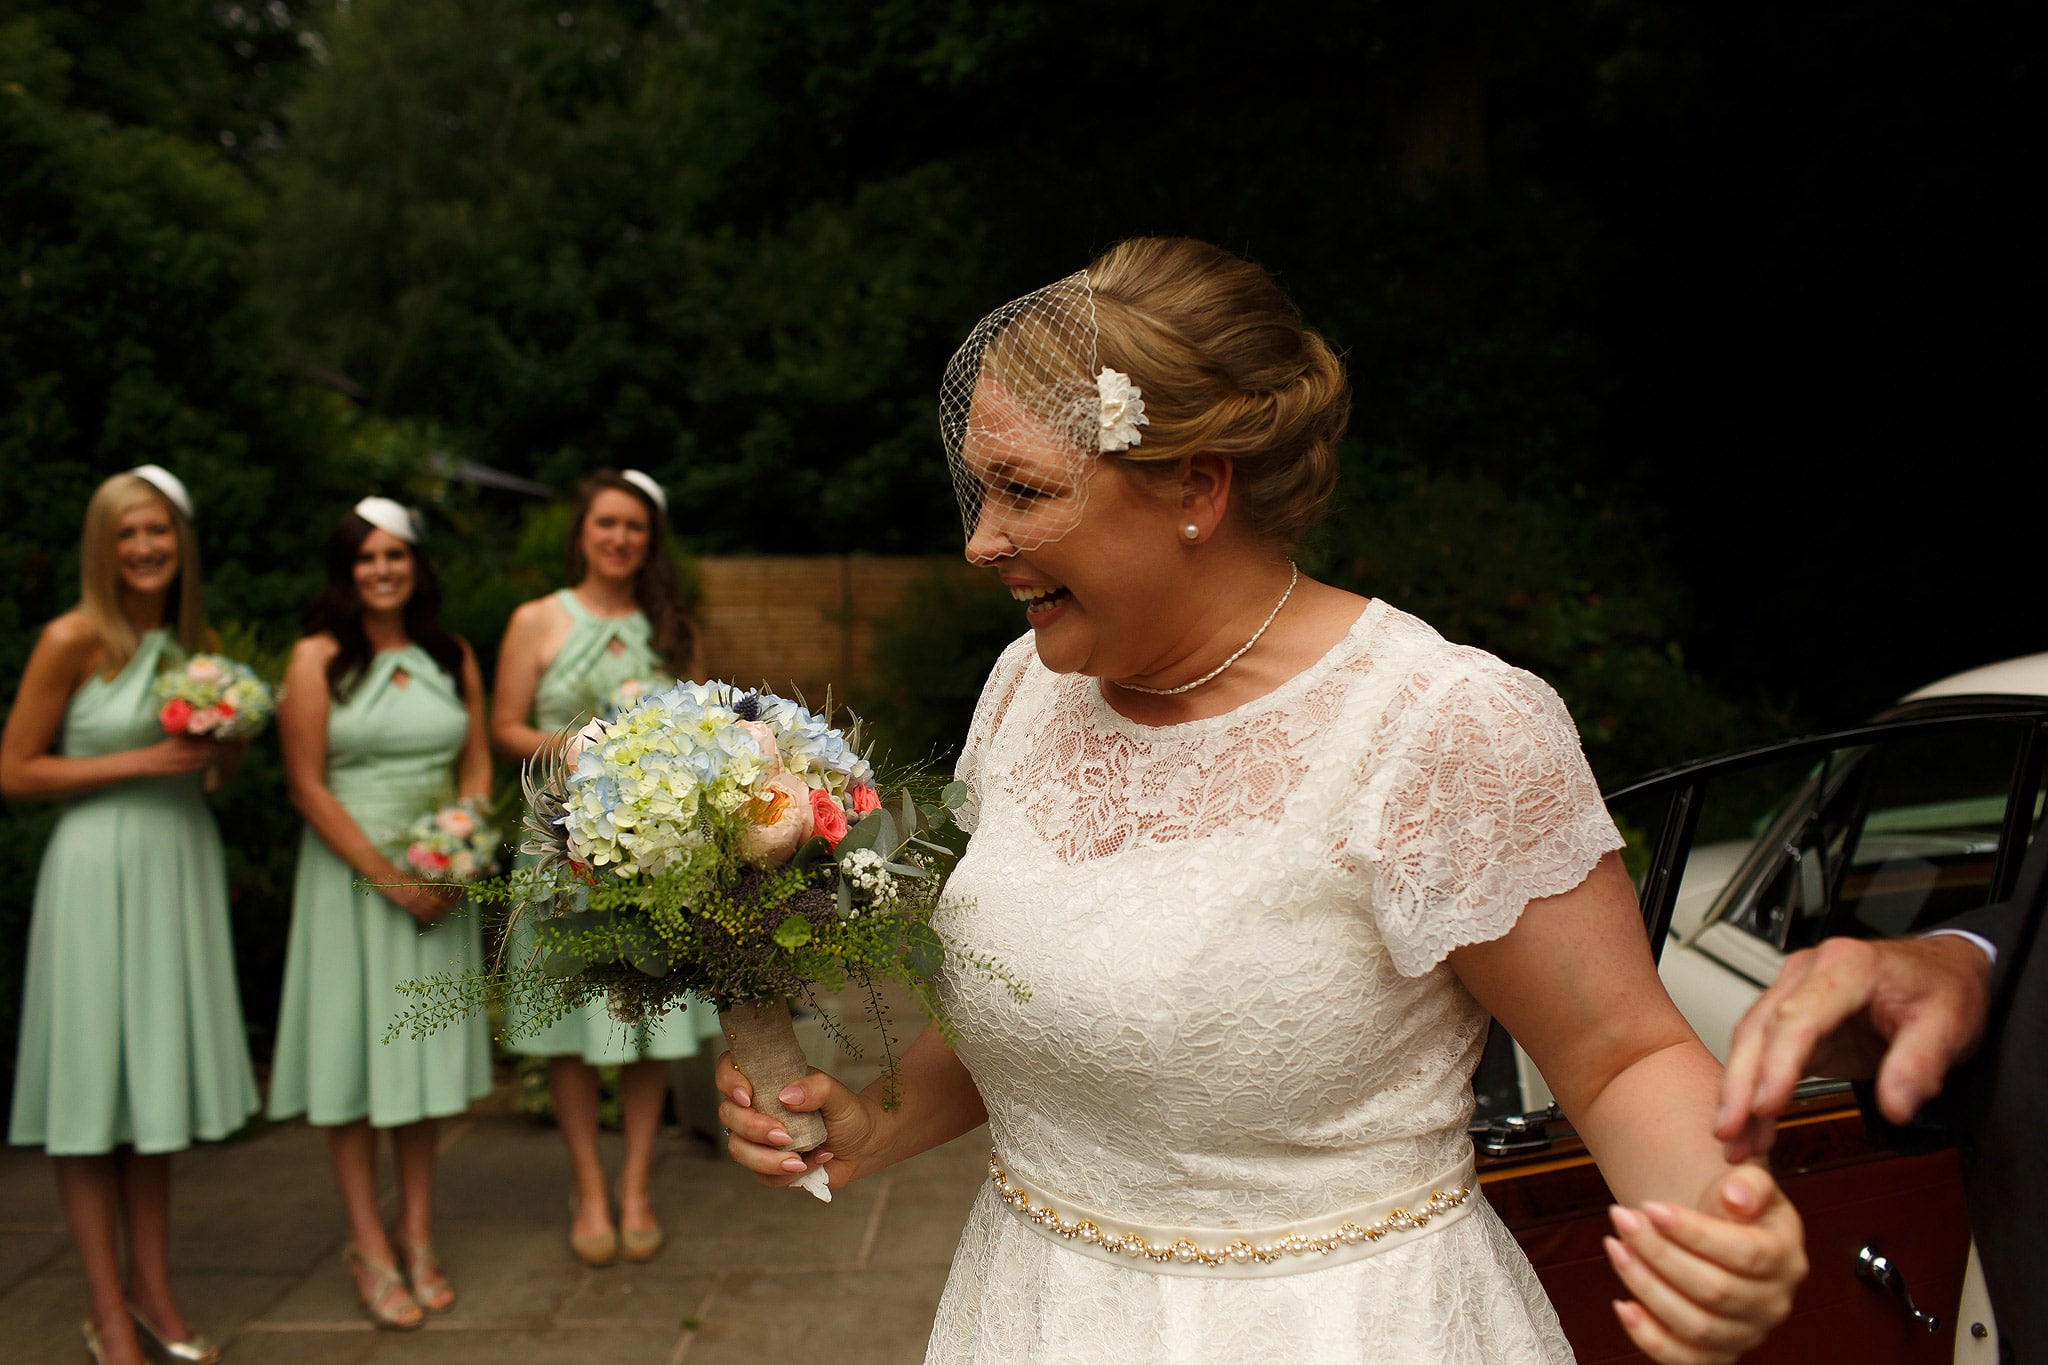 Bride wearing knee length tea dress with bridesmaids wearing mint green dresses